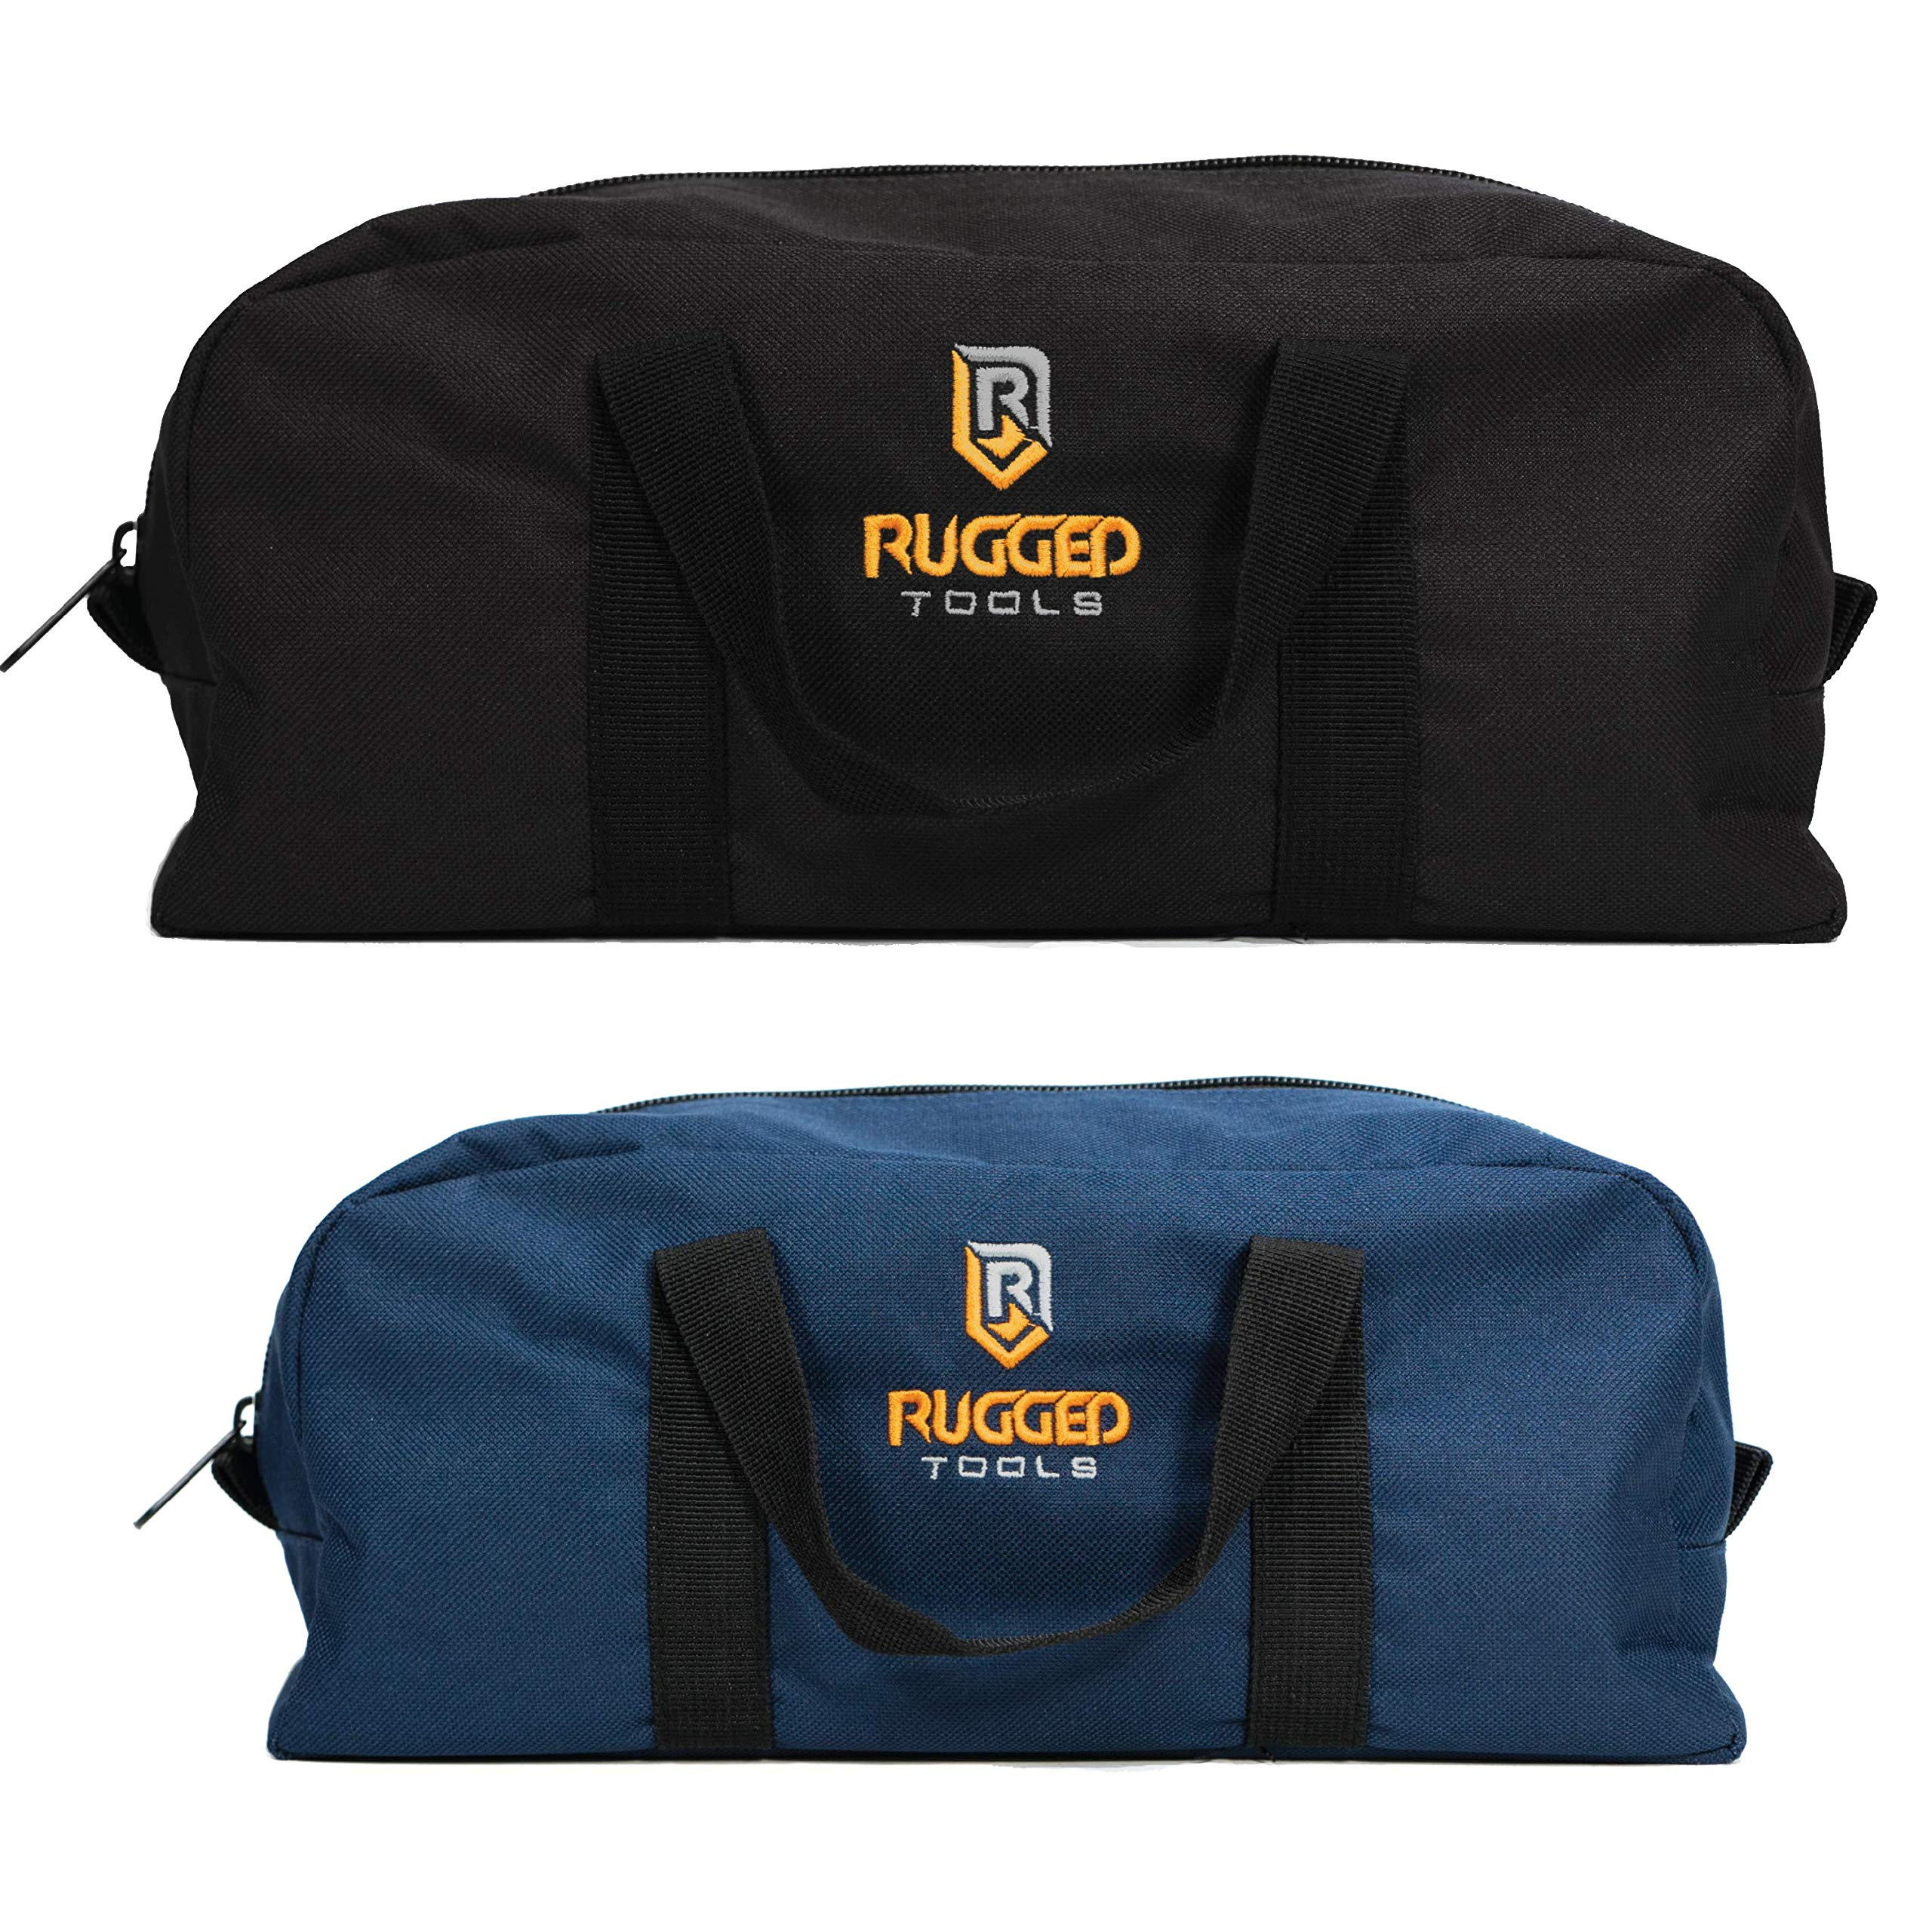 Rugged Tools Tool Bag Combo - Includes 1 Small & 1 Medium Toolbag - Organizer Tote Bags for Electrician, Plumbing, Gardening, HVAC & More by Rugged Tools (Image #2)